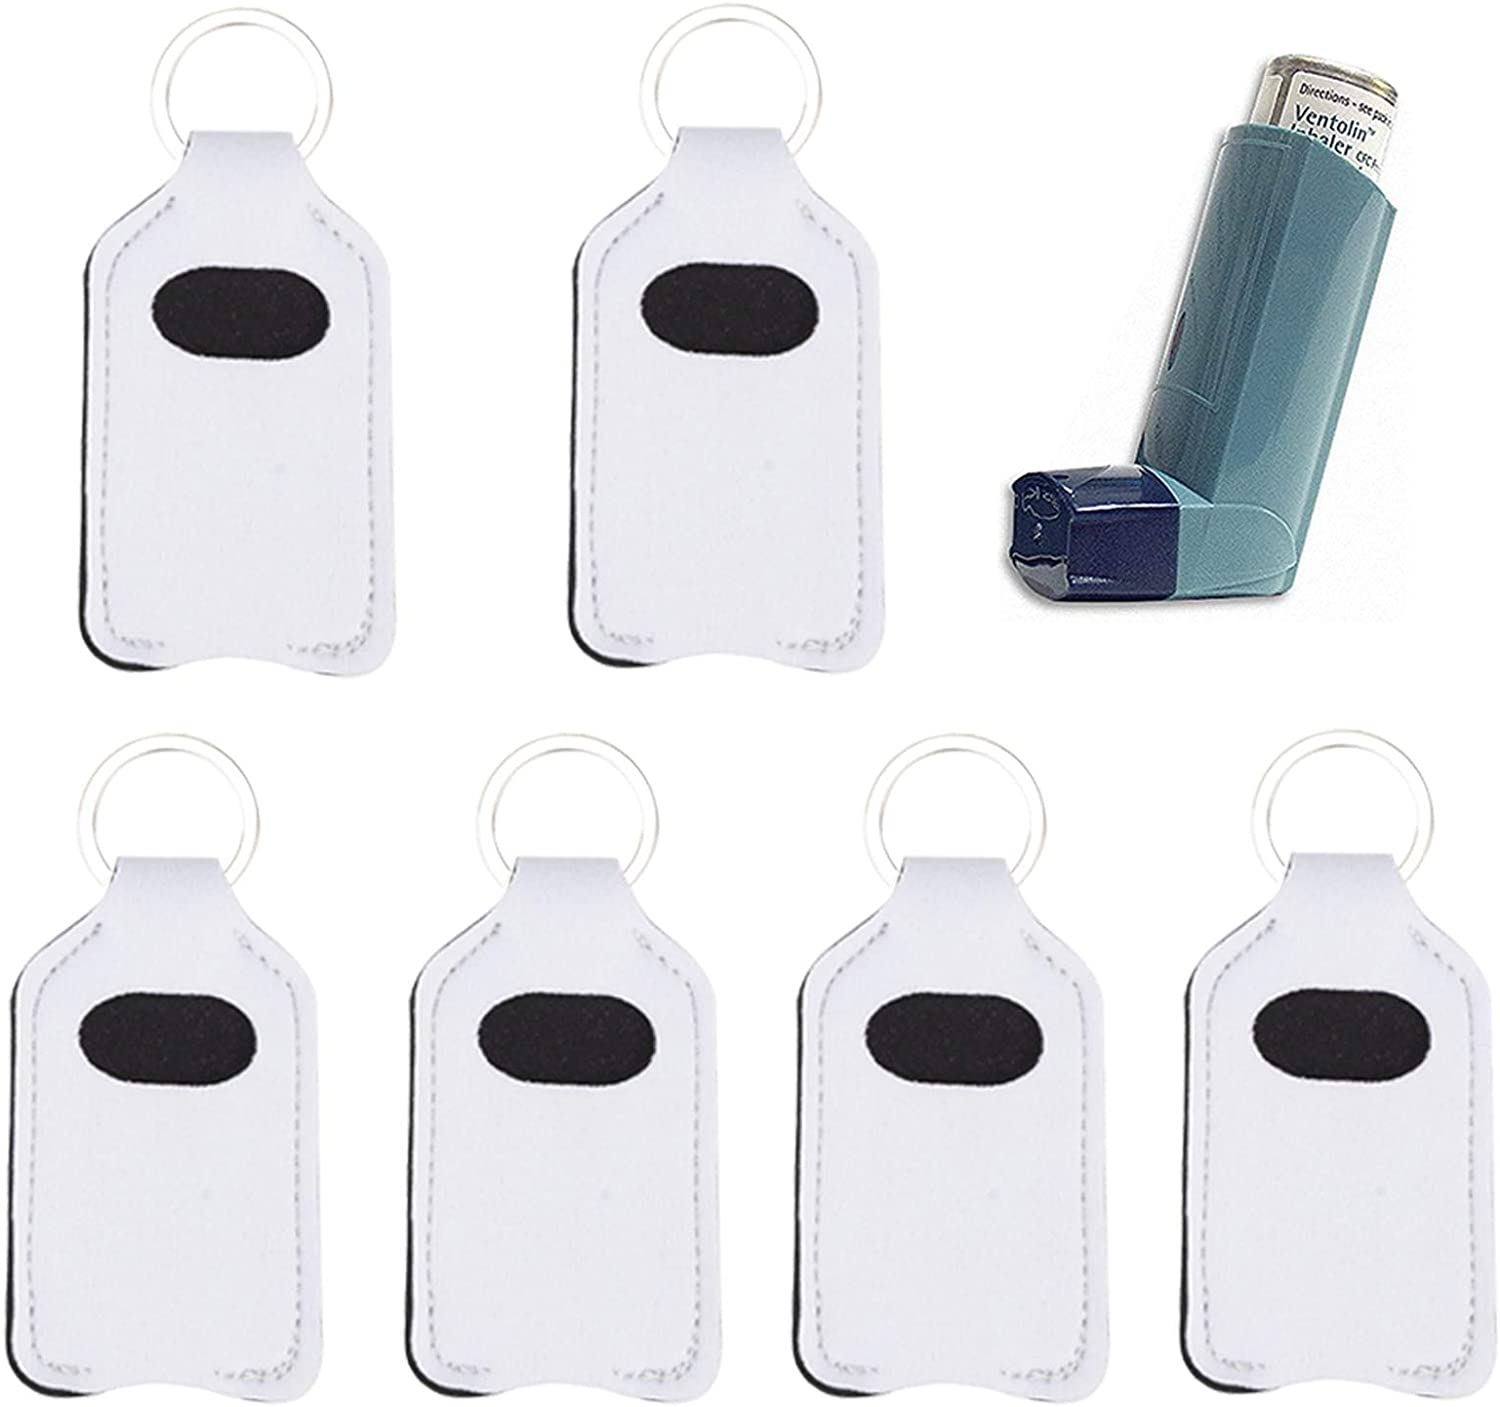 Asthma Inhaler Medicine Travel Case,Inhaler Pouch,Pro air Inhaler Holder,Asthma Inhaler case for Children and Adults Fits Inhaler,Protect Portable Inhalers from Dust and Dirt (Style 2) : Health & Household